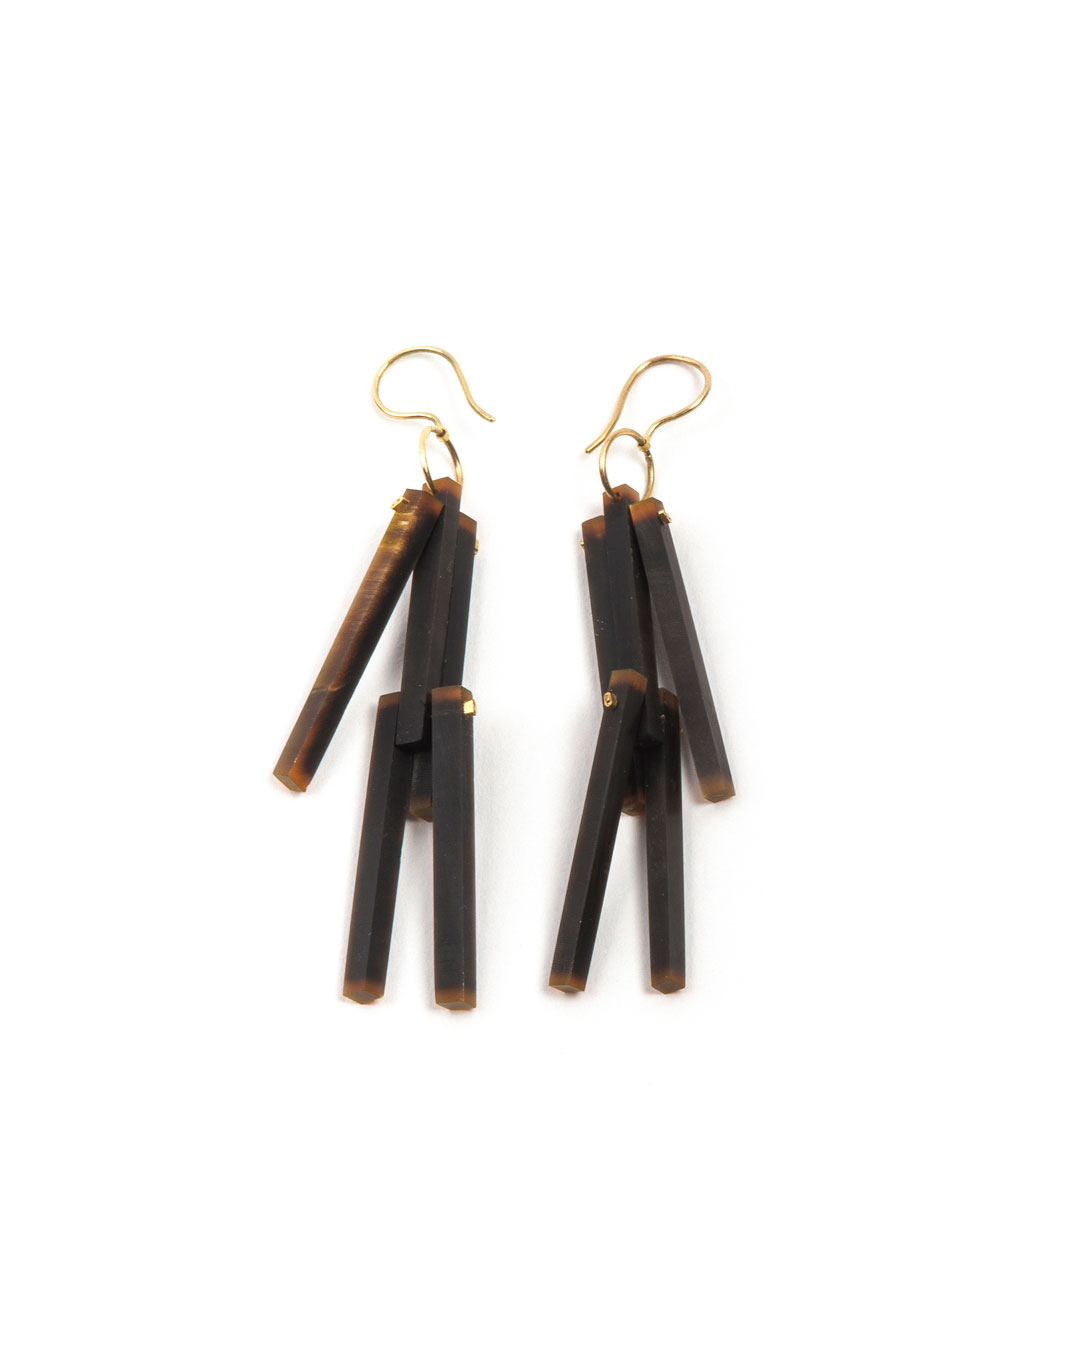 Julie Mollenhauer, untitled (Little Men), 2019, earrings; buffalo horn, 18ct gold, 14ct gold, 65 x 9 x 9 mm, €820